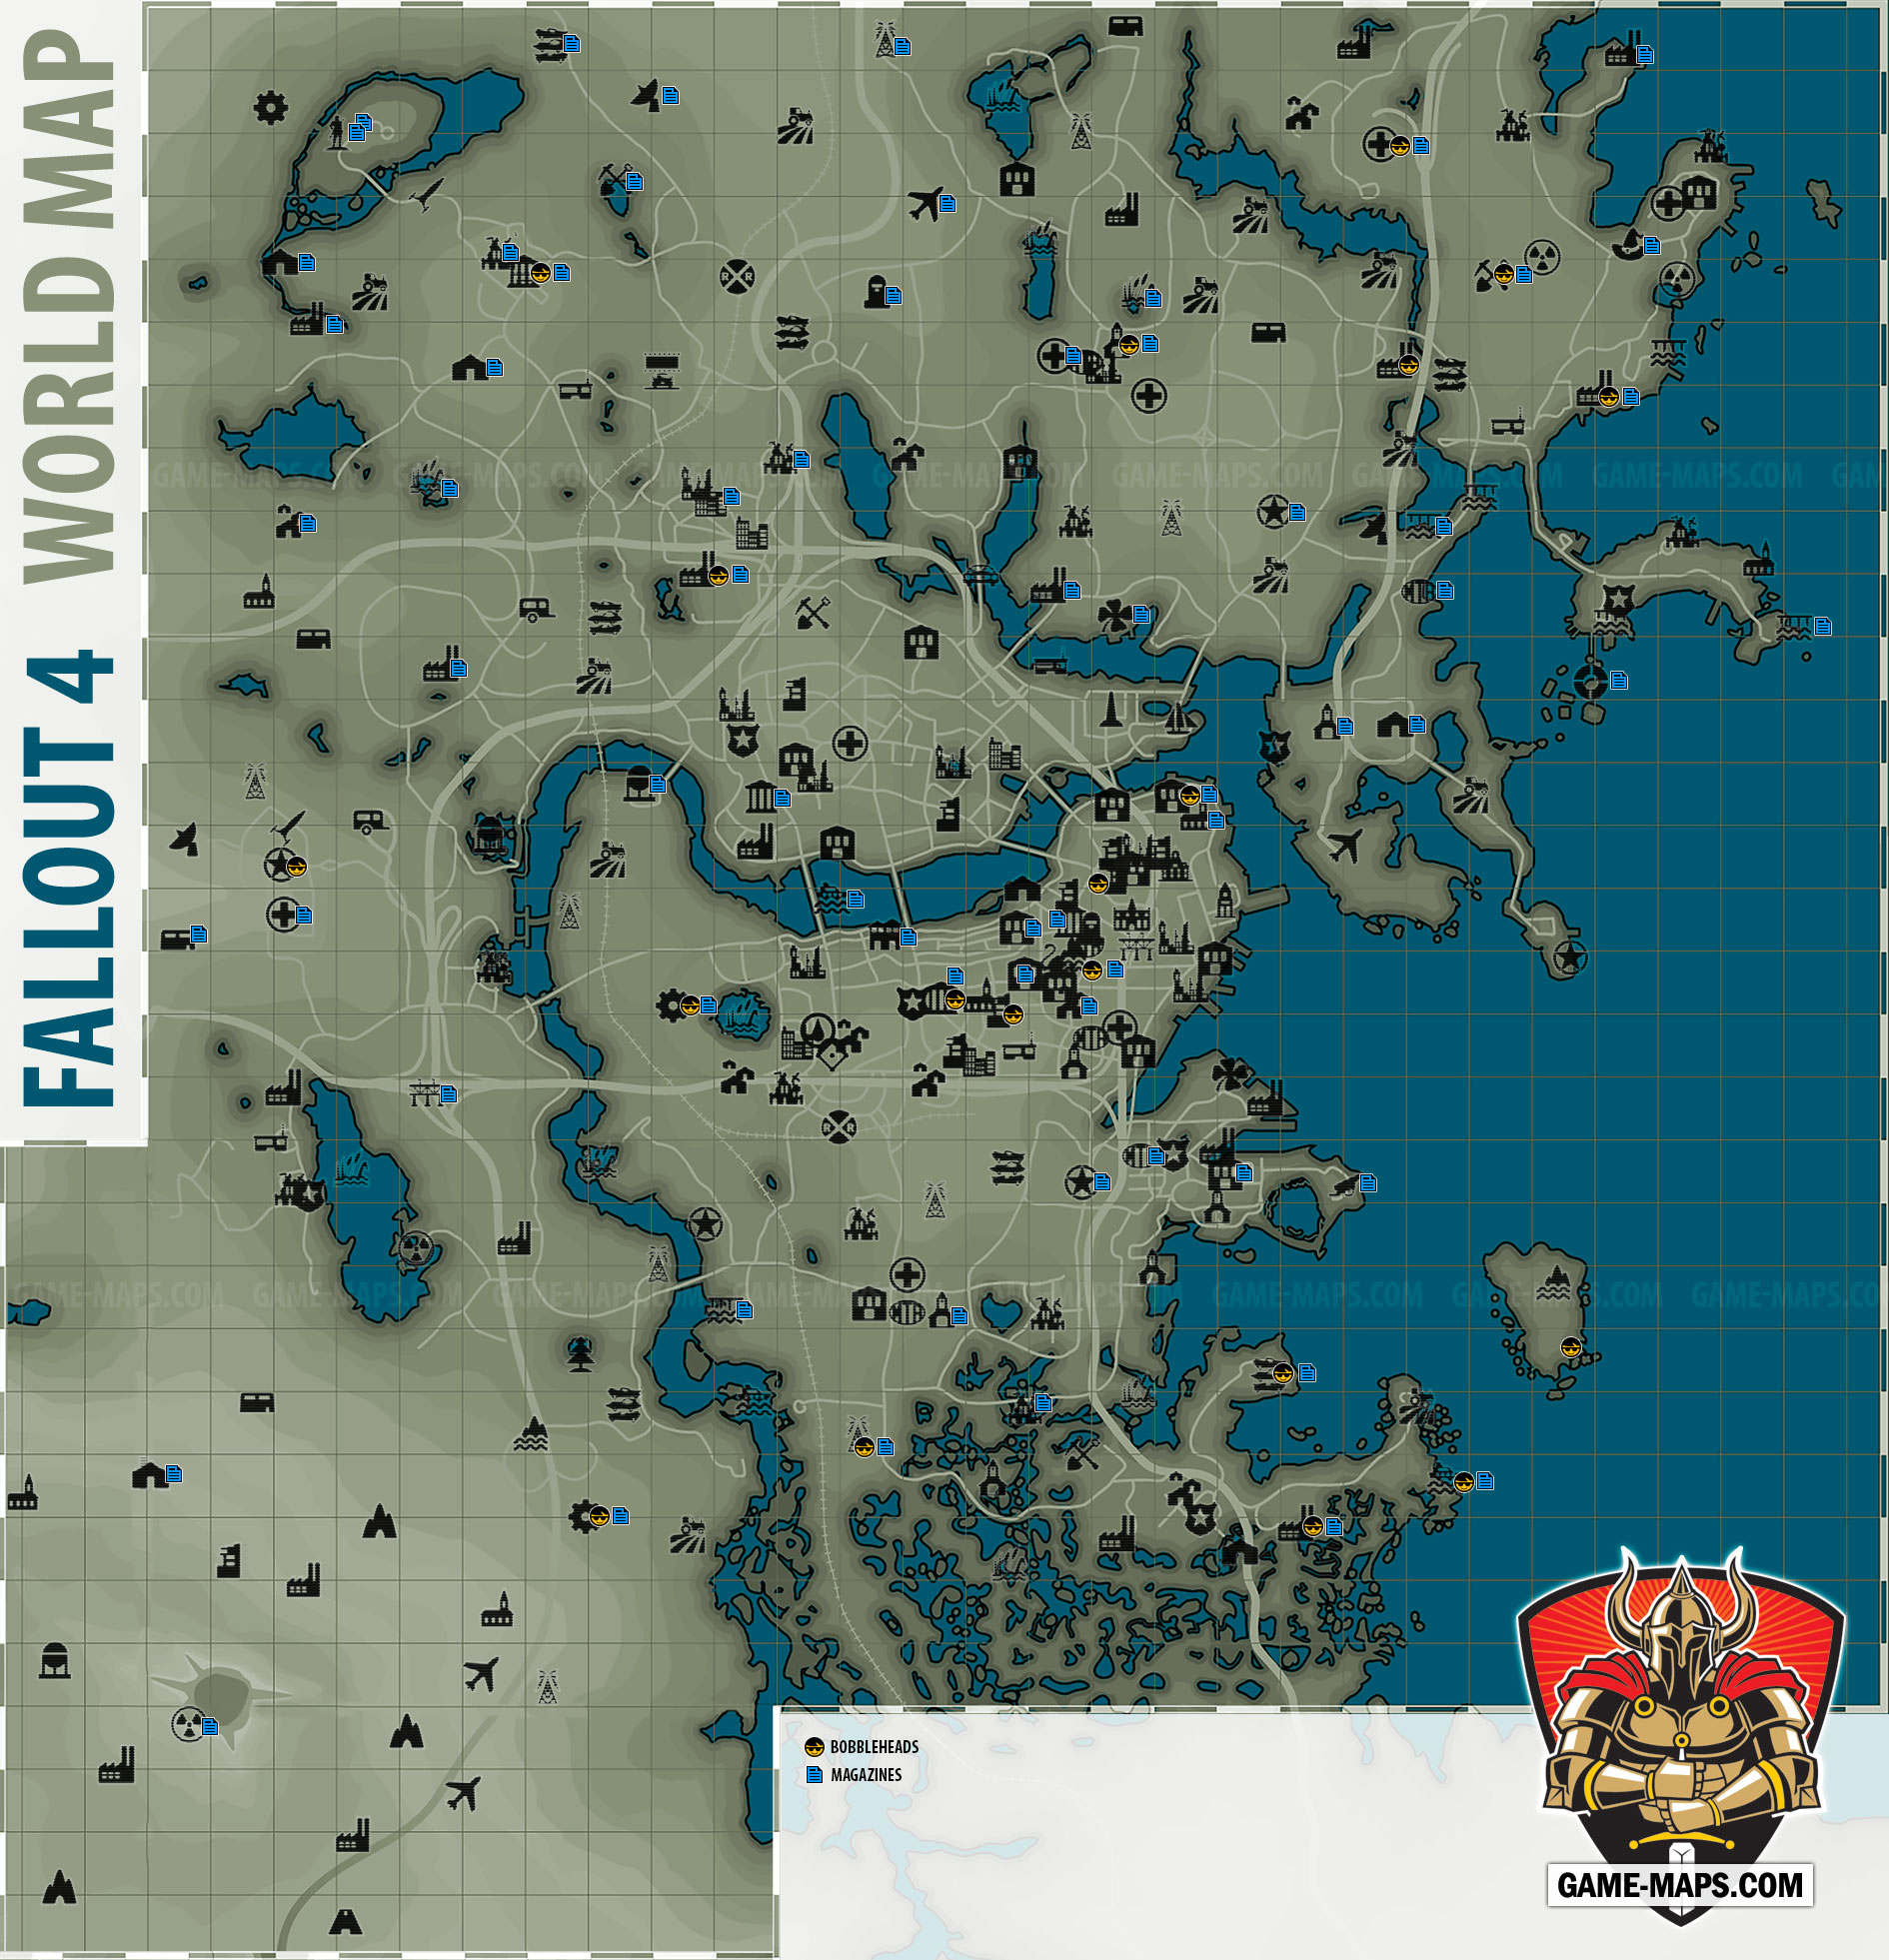 Fallout 4 world map fallout 4 maps walkthrough game guide for fallout 4 fallout 4 world map gumiabroncs Images